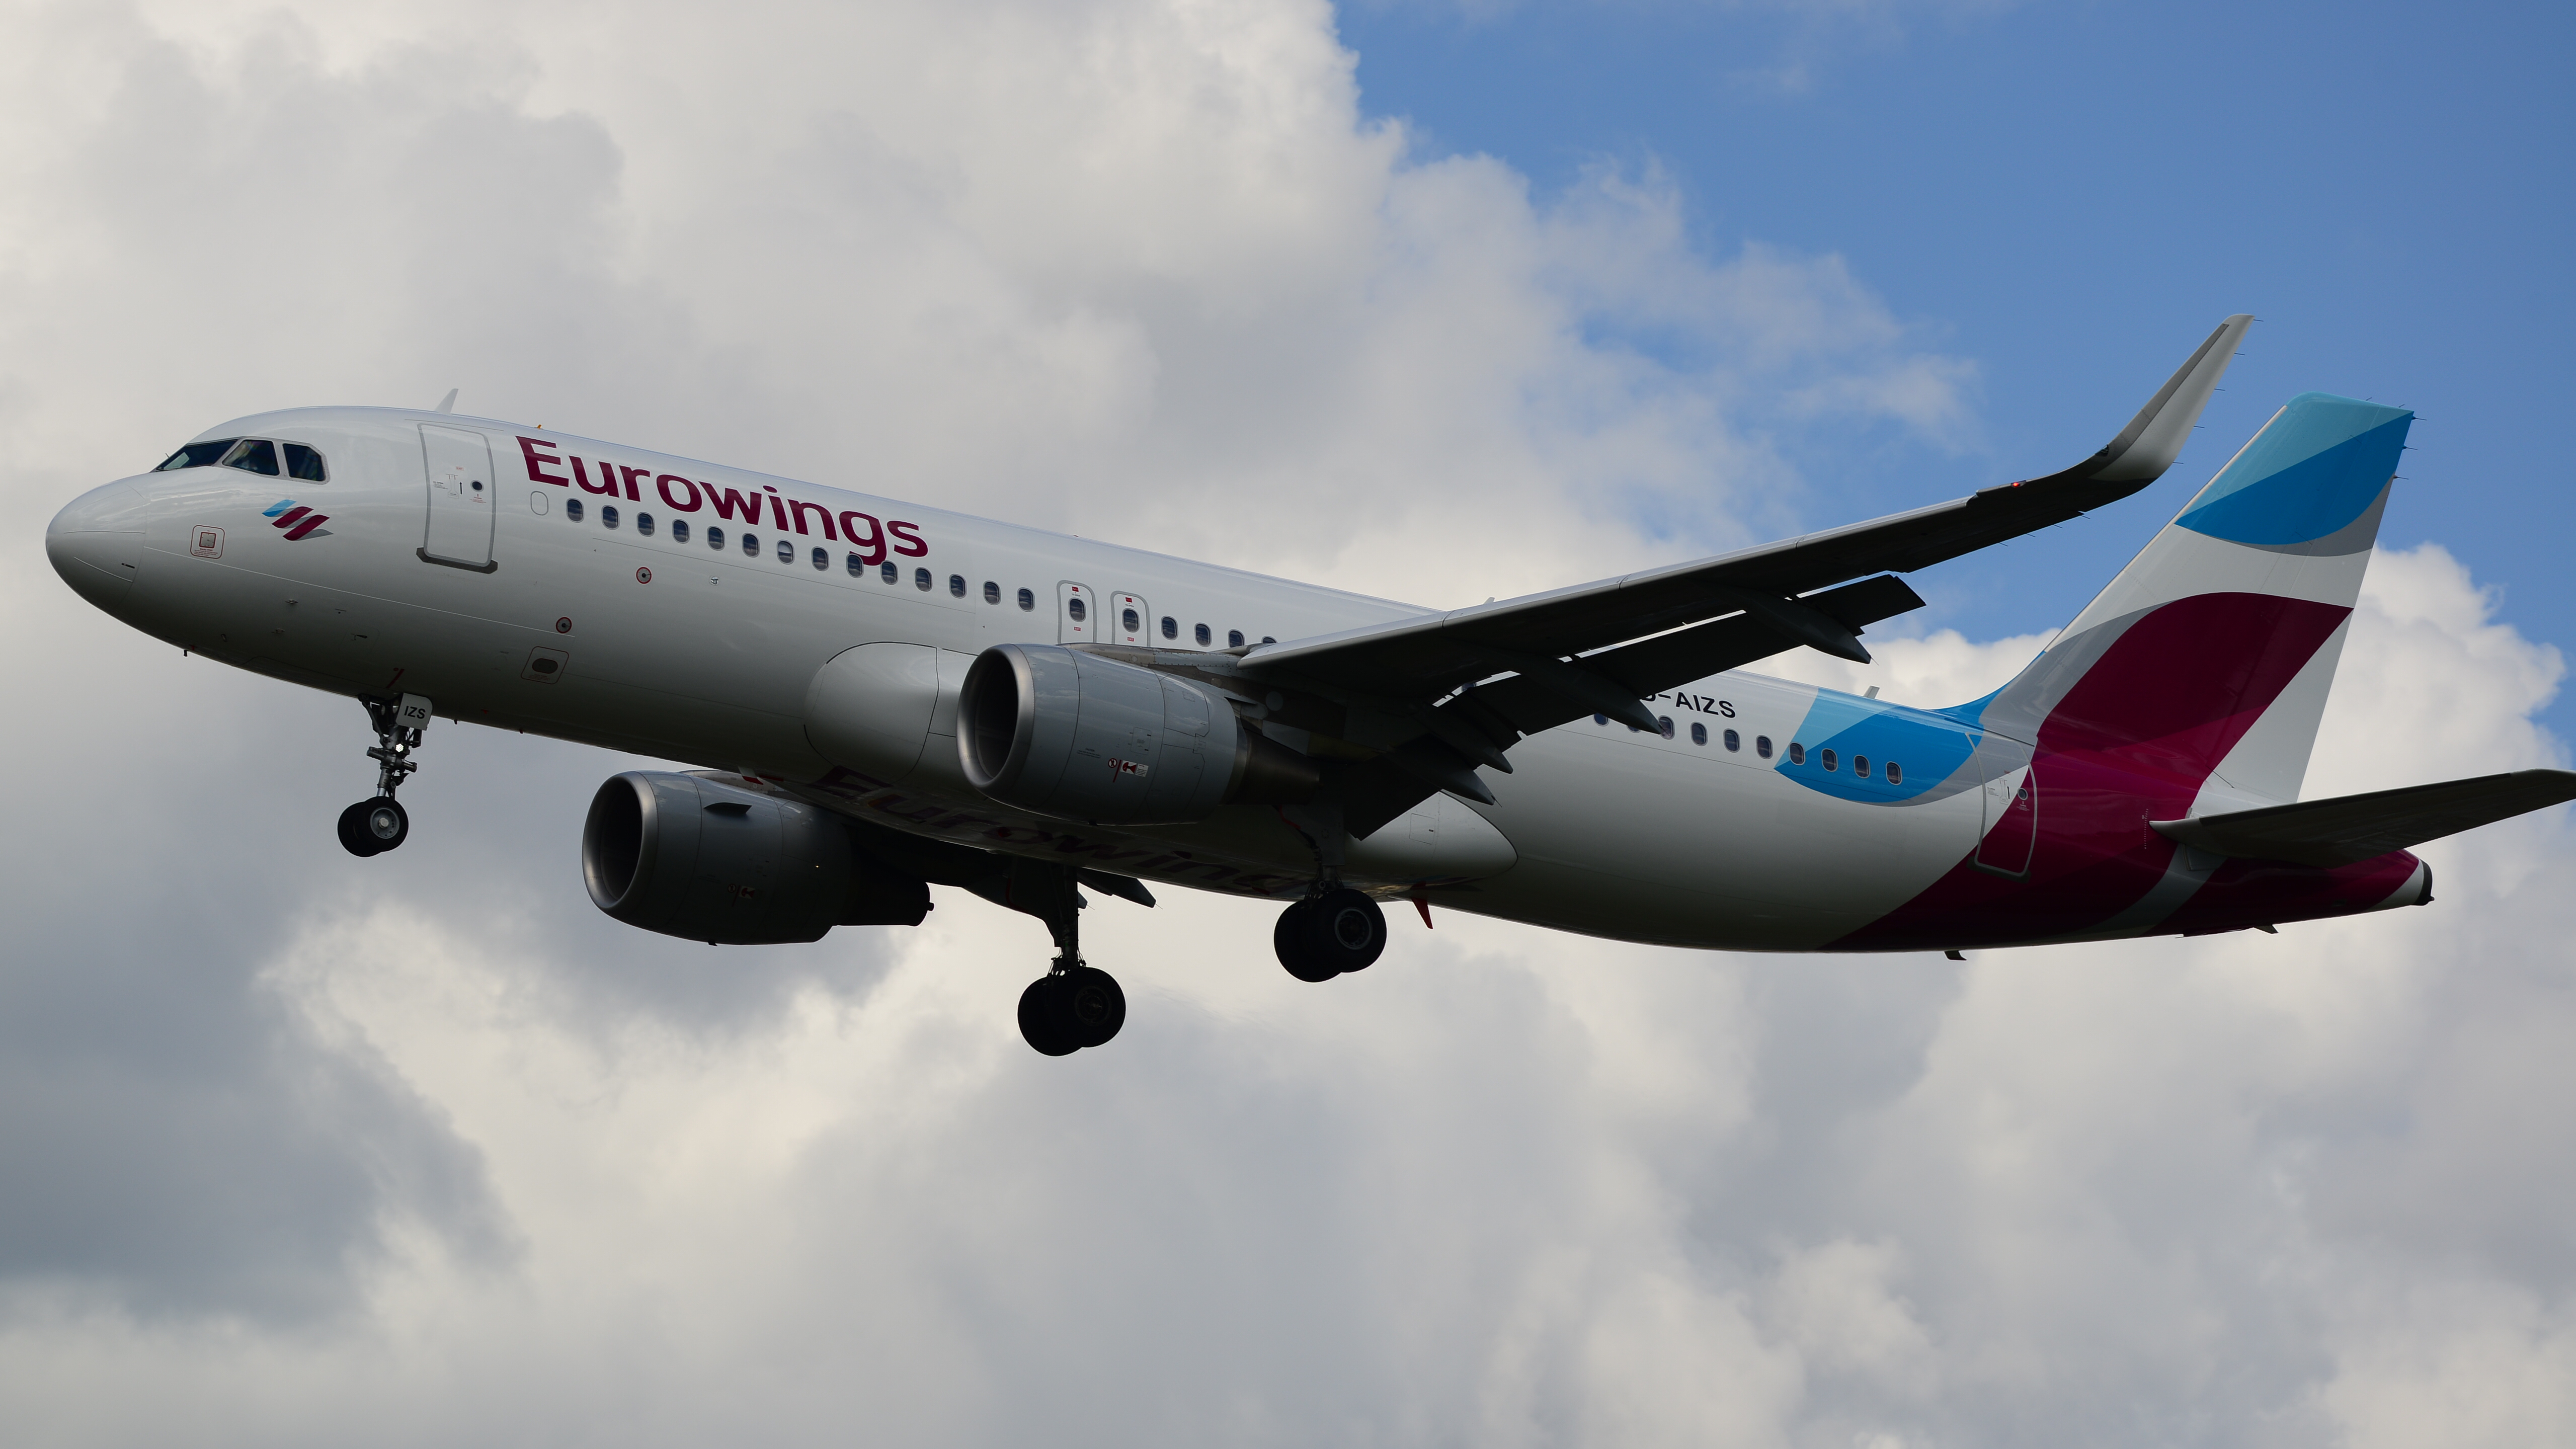 Eurowings,_D-AIZS_Airbus_A320_(17136092688)